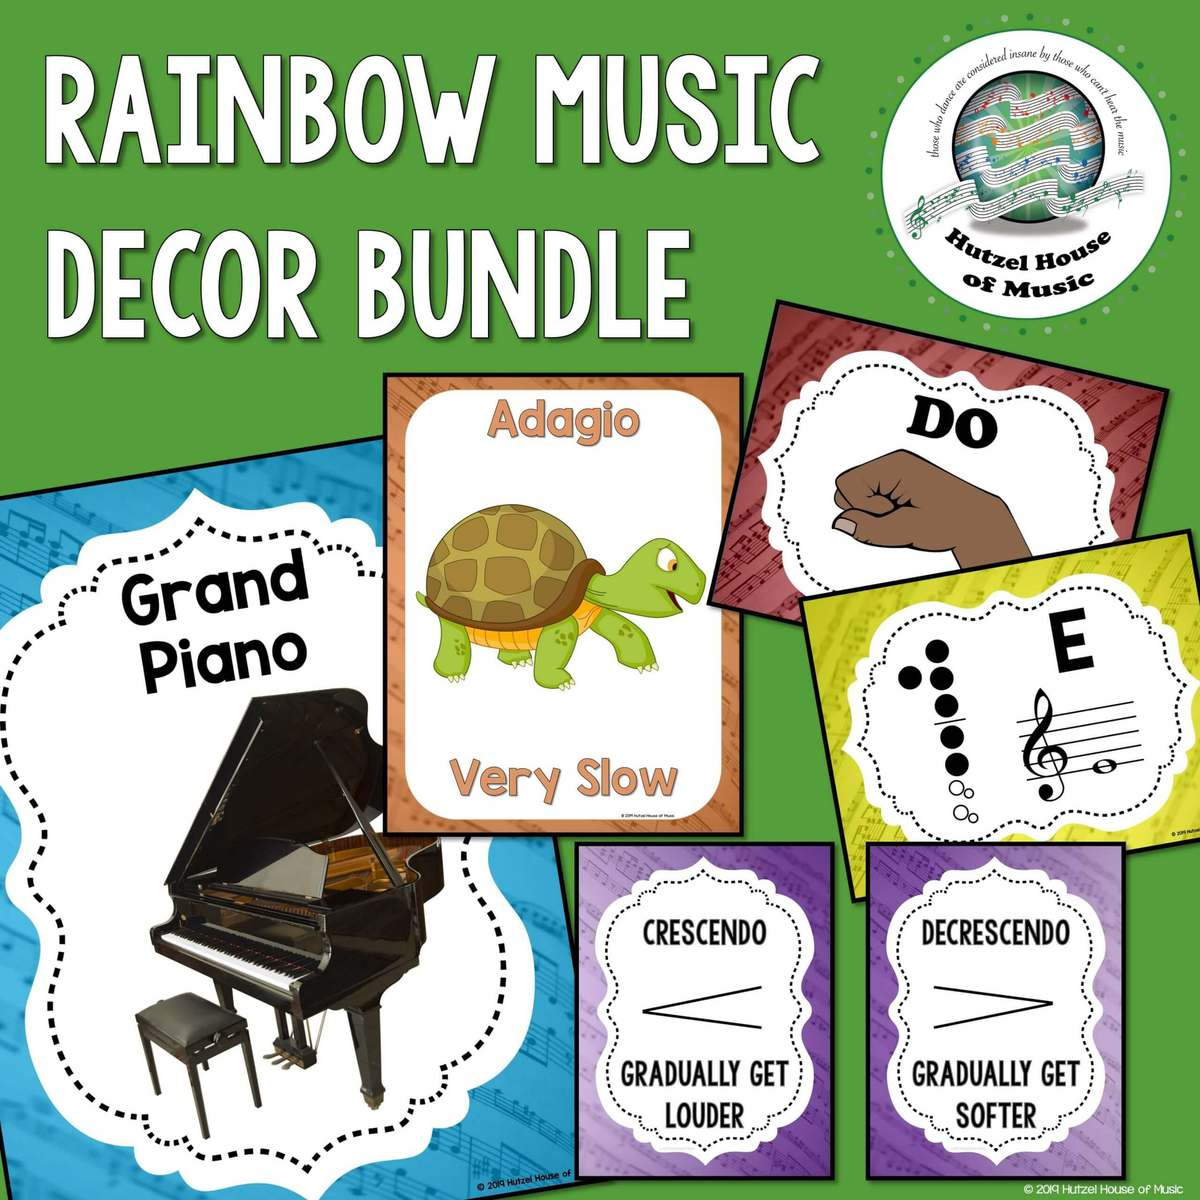 Rainbow Music Decor Bundle